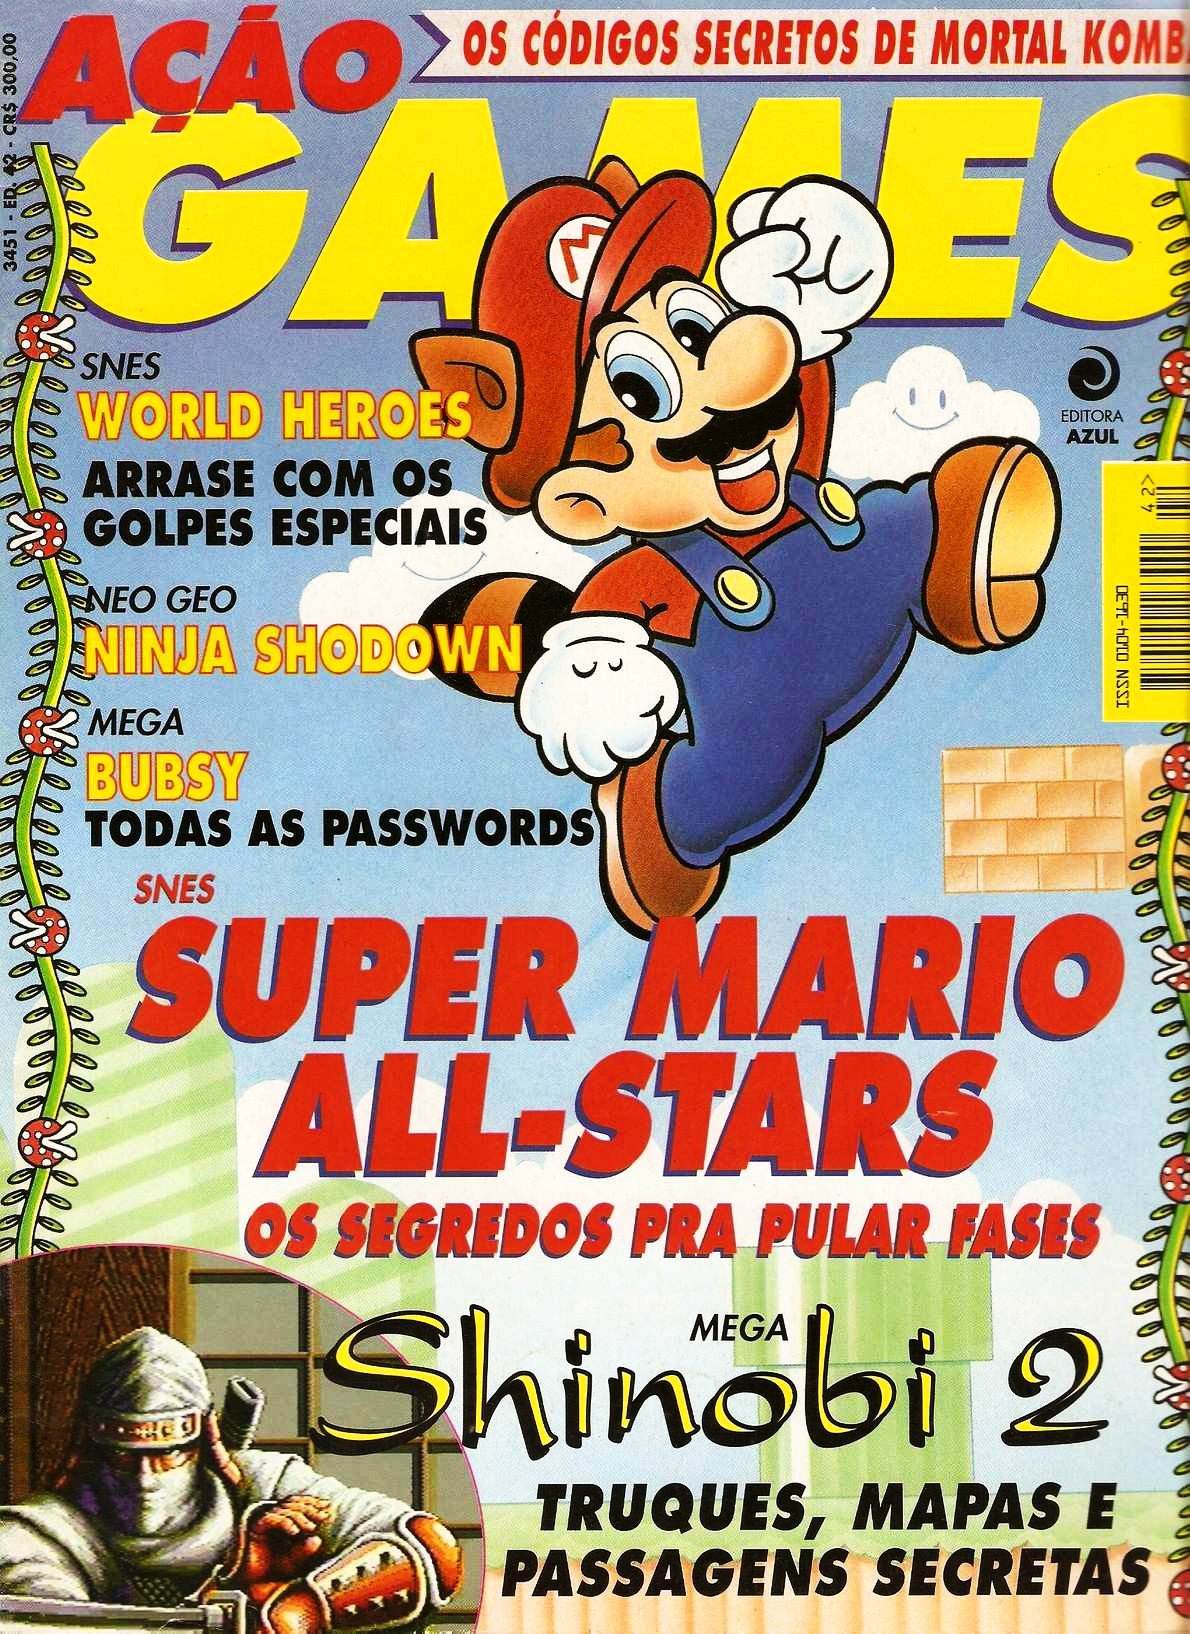 Acao Games Issue 042 (September 1993)